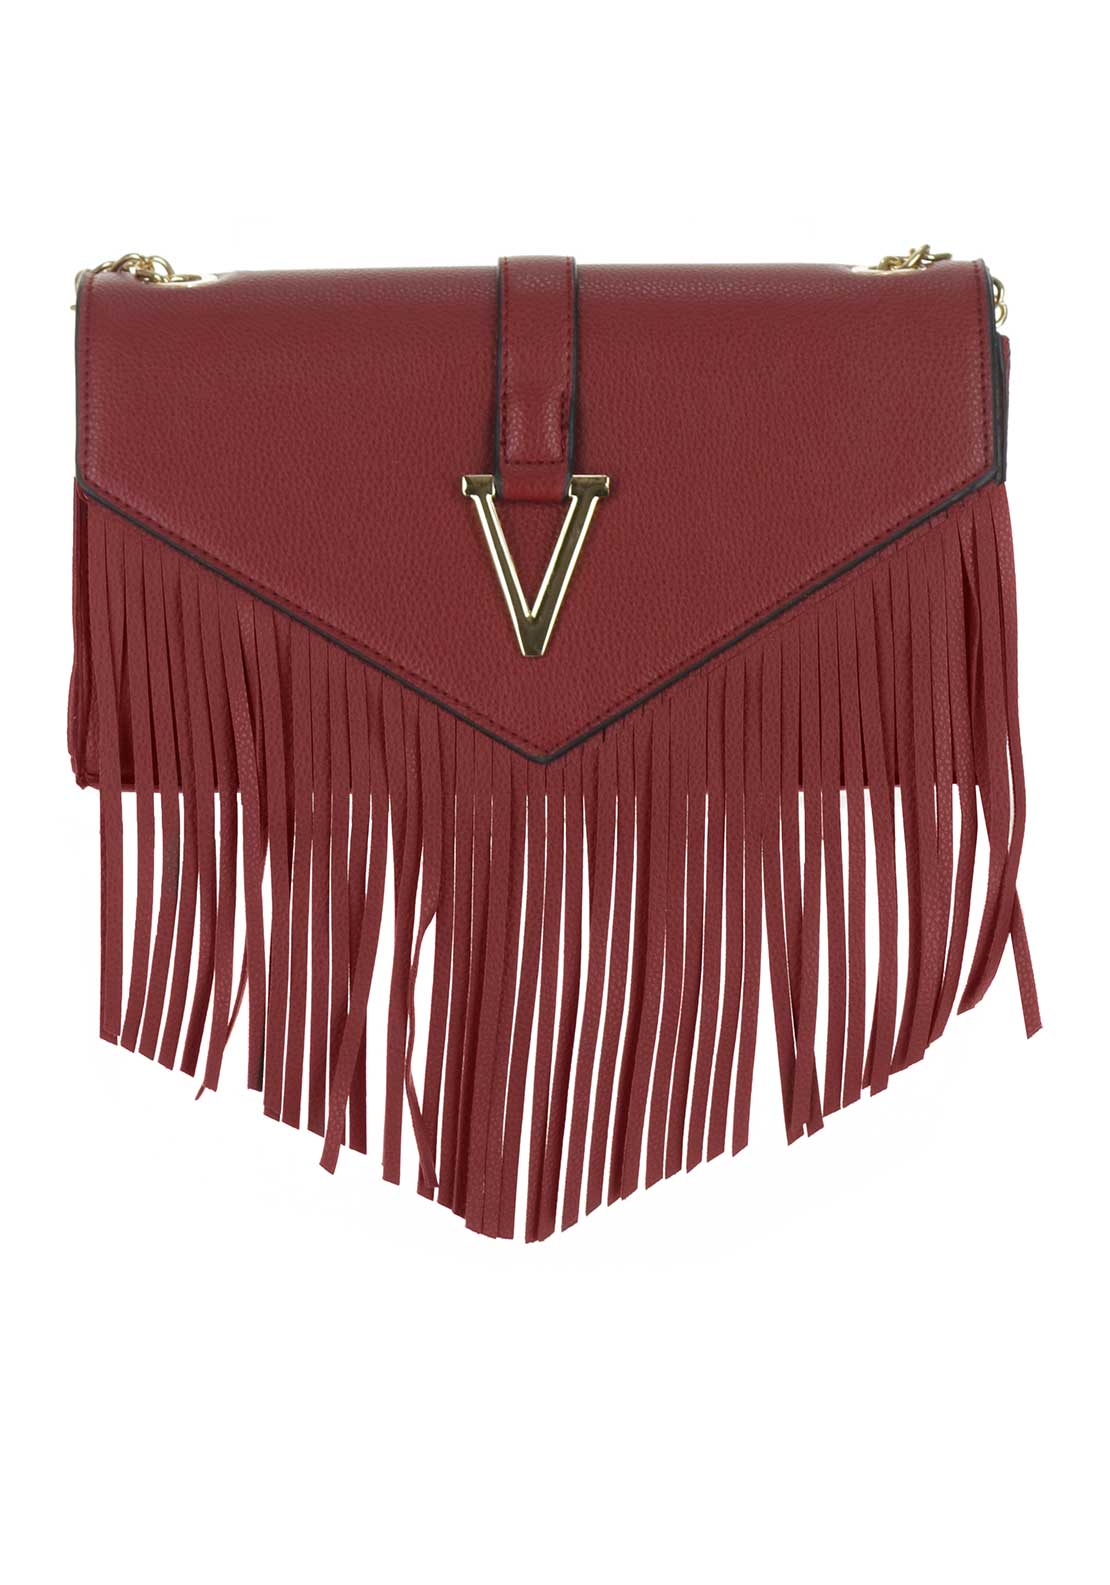 Boutique Fringed Crossbody Bag, Dark Red